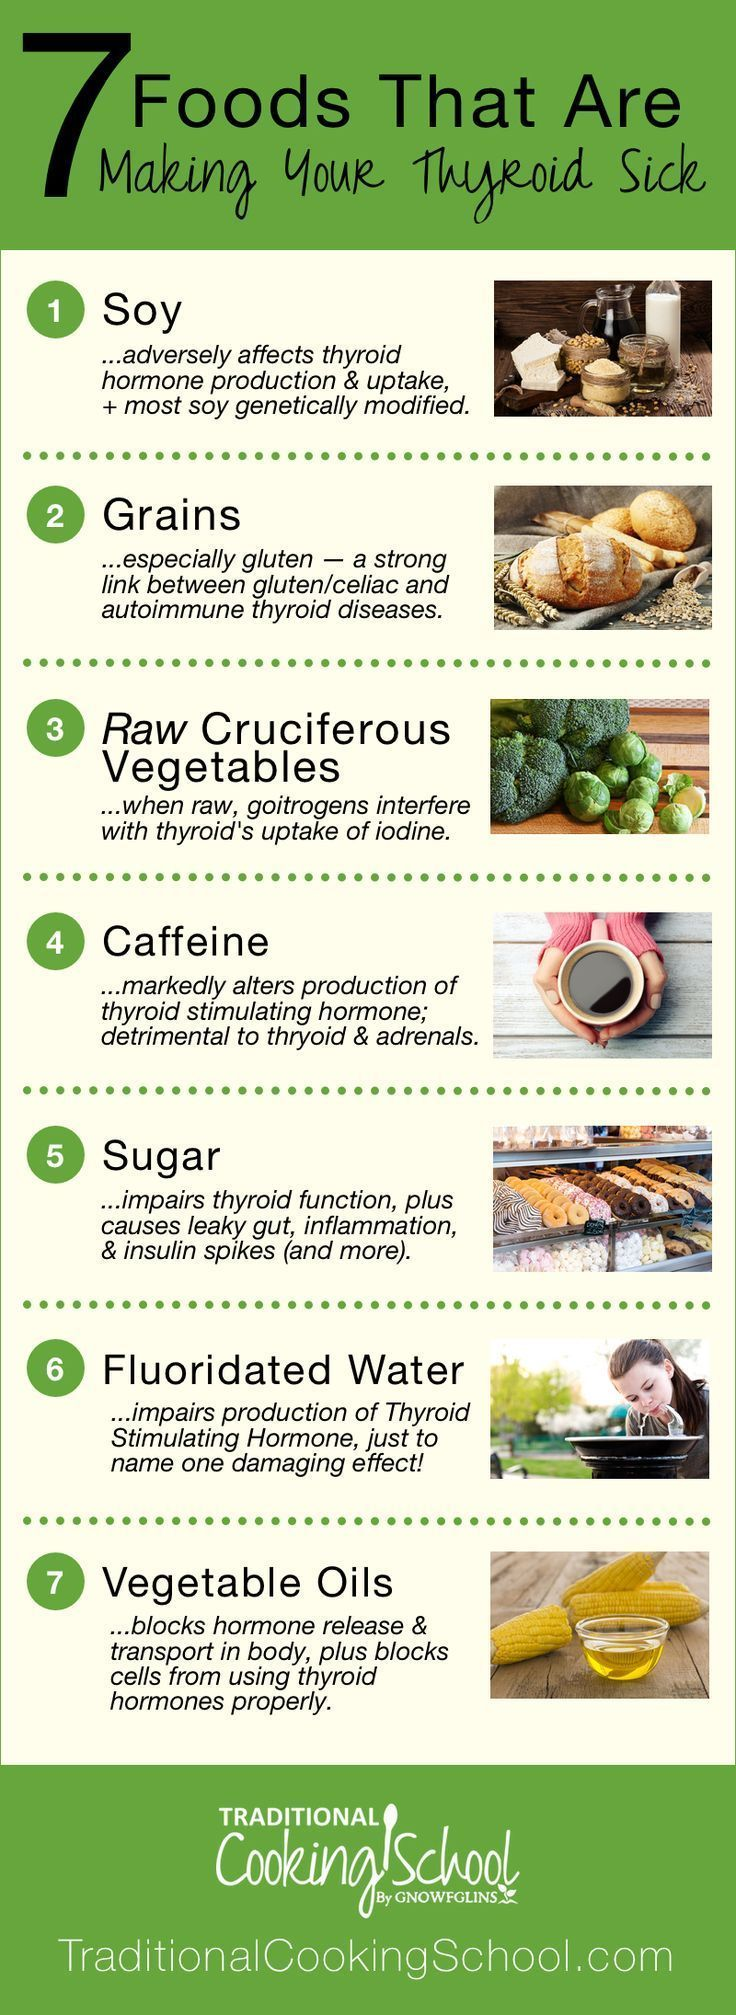 Forum on this topic: The 12 Worst Foods for Hypothyroidism, the-12-worst-foods-for-hypothyroidism/